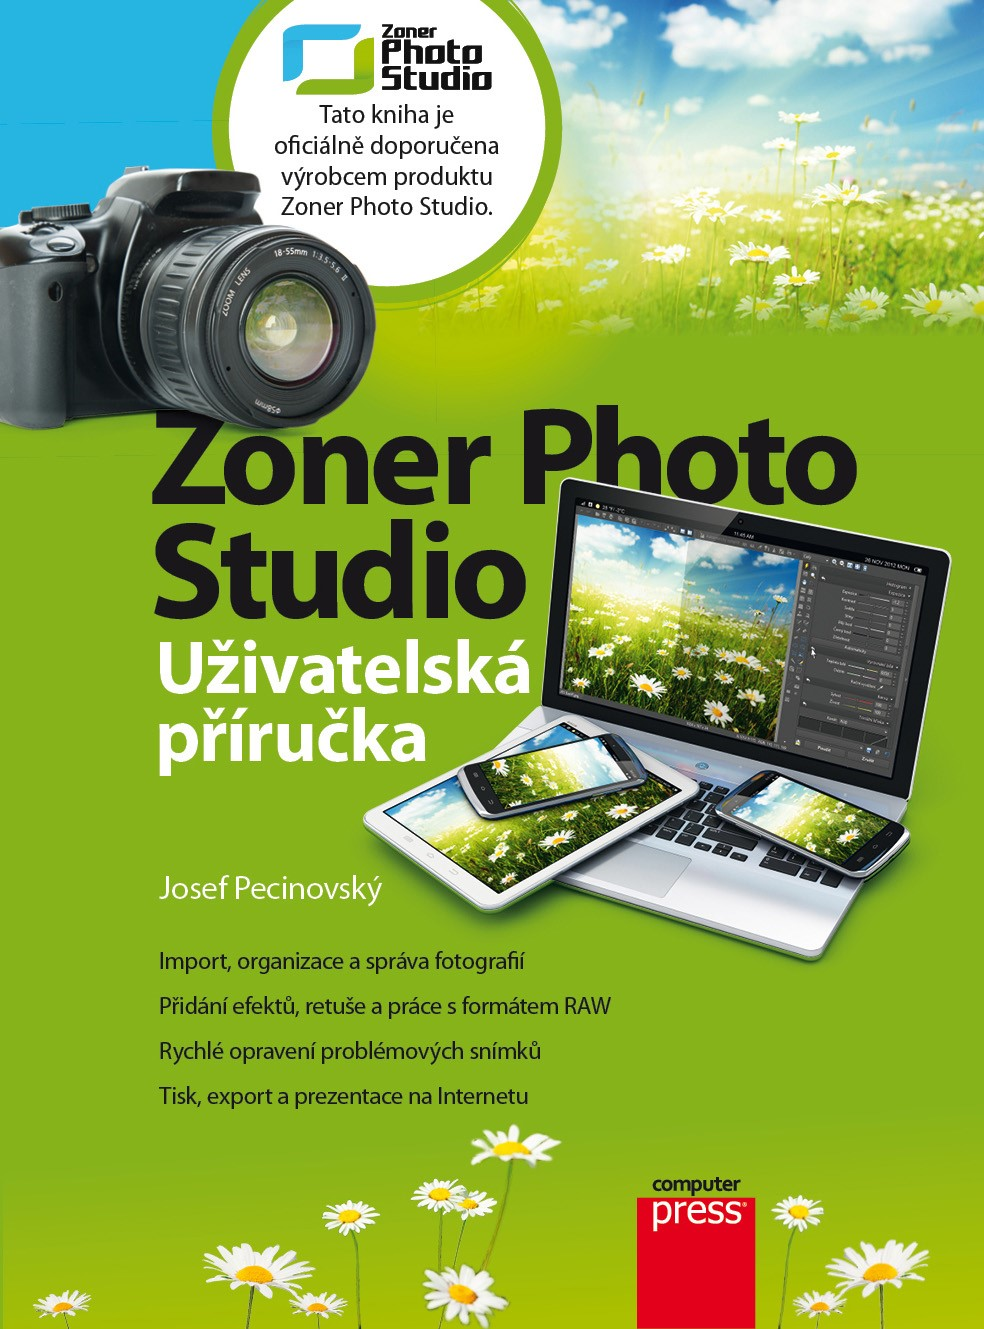 Zoner Photo Studio | Josef Pecinovský